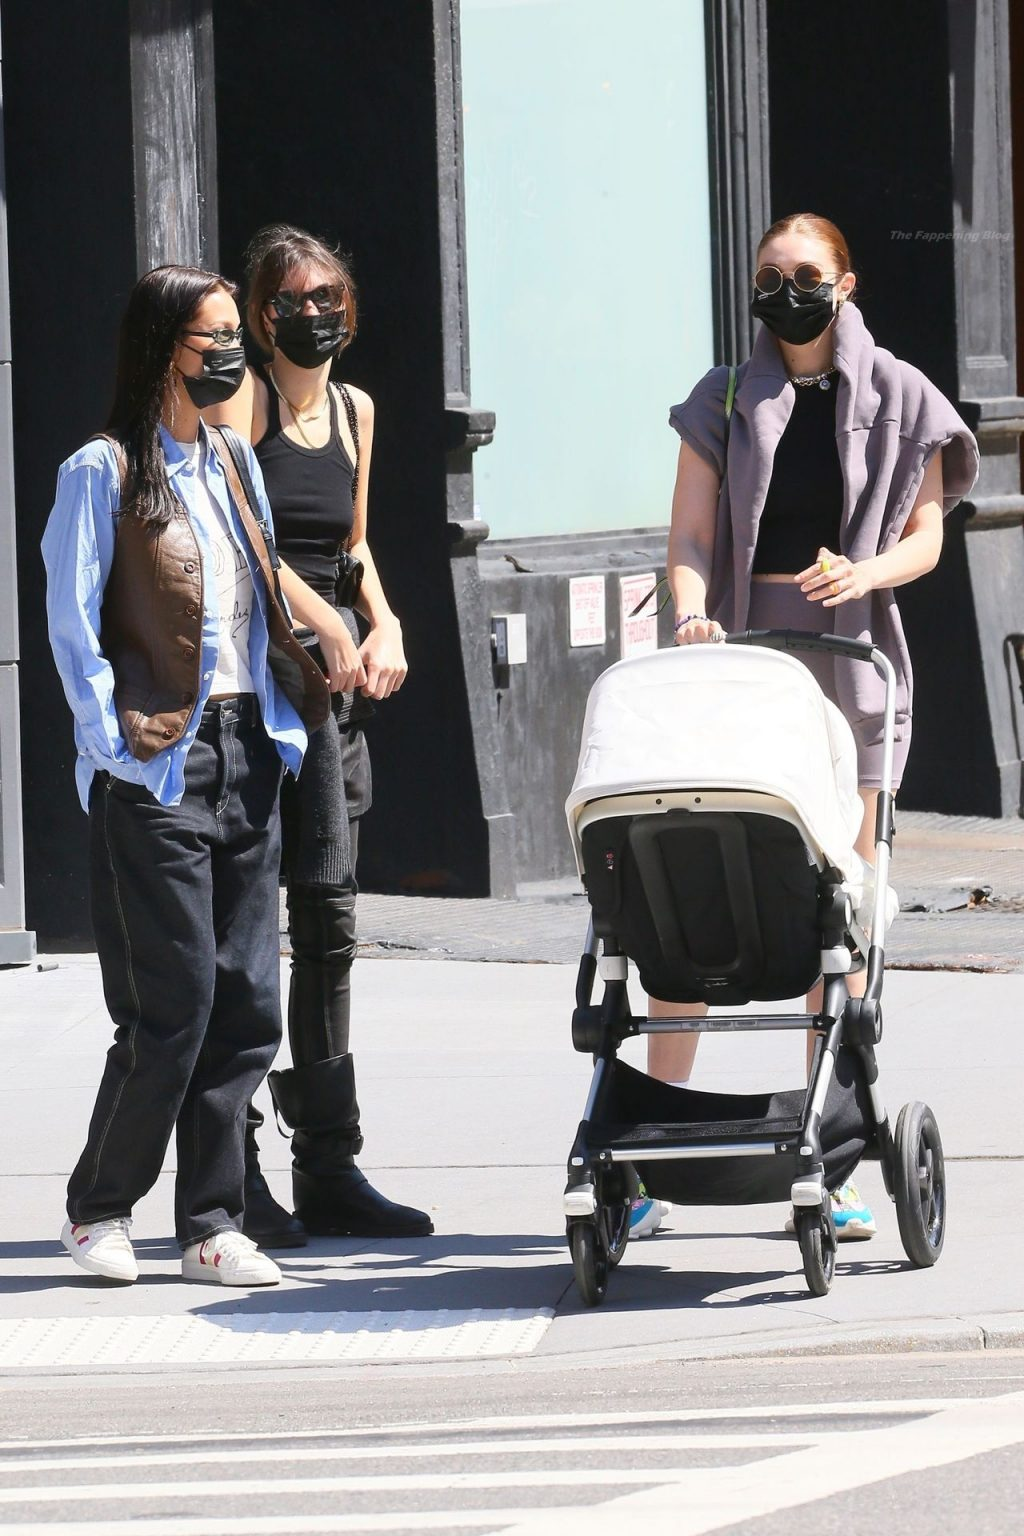 Gigi & Bella Hadid Leave 'The Smile' After Having Lunch with Her Daughter and a Friend (68 Photos)